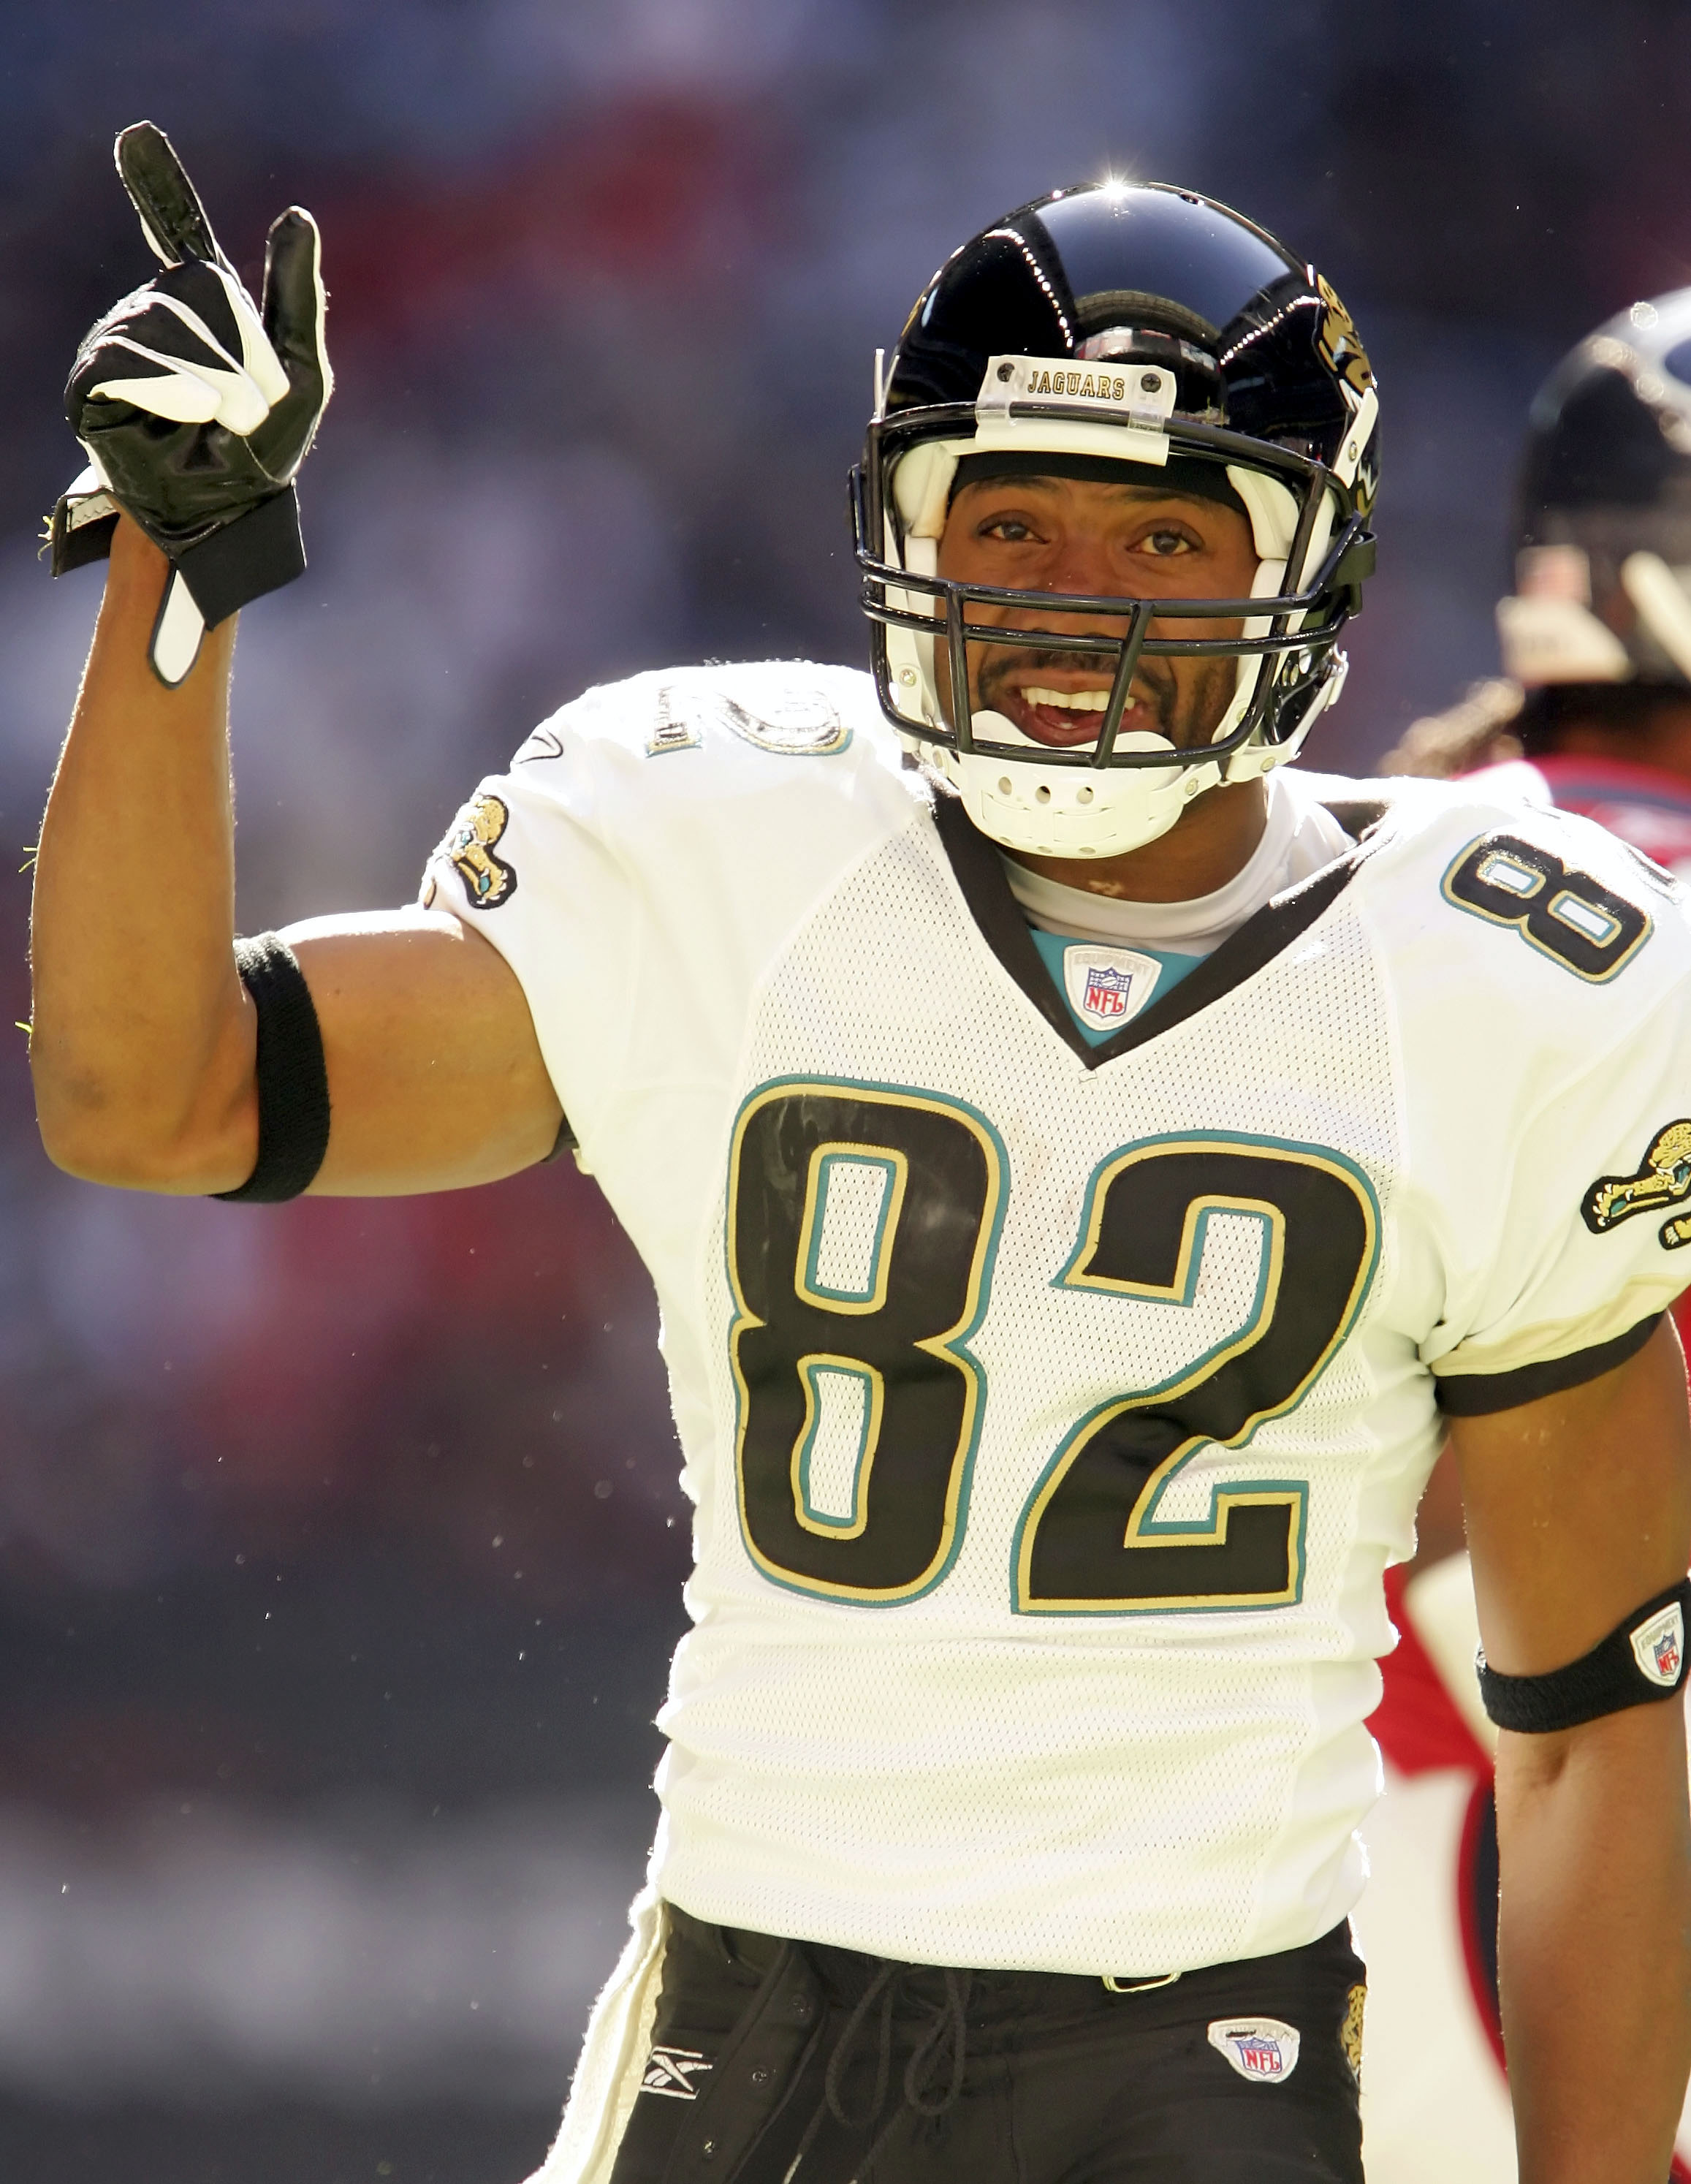 HOUSTON - DECEMBER 24:   Jimmy Smith #82 of the Jacksonville Jaguars celebrates during the game against the Houston Texans on December 24, 2005 at Reliant Stadium in Houston, Texas. The Jaguars won 38-20.  (Photo by Lisa Blumenfeld/Getty Images)